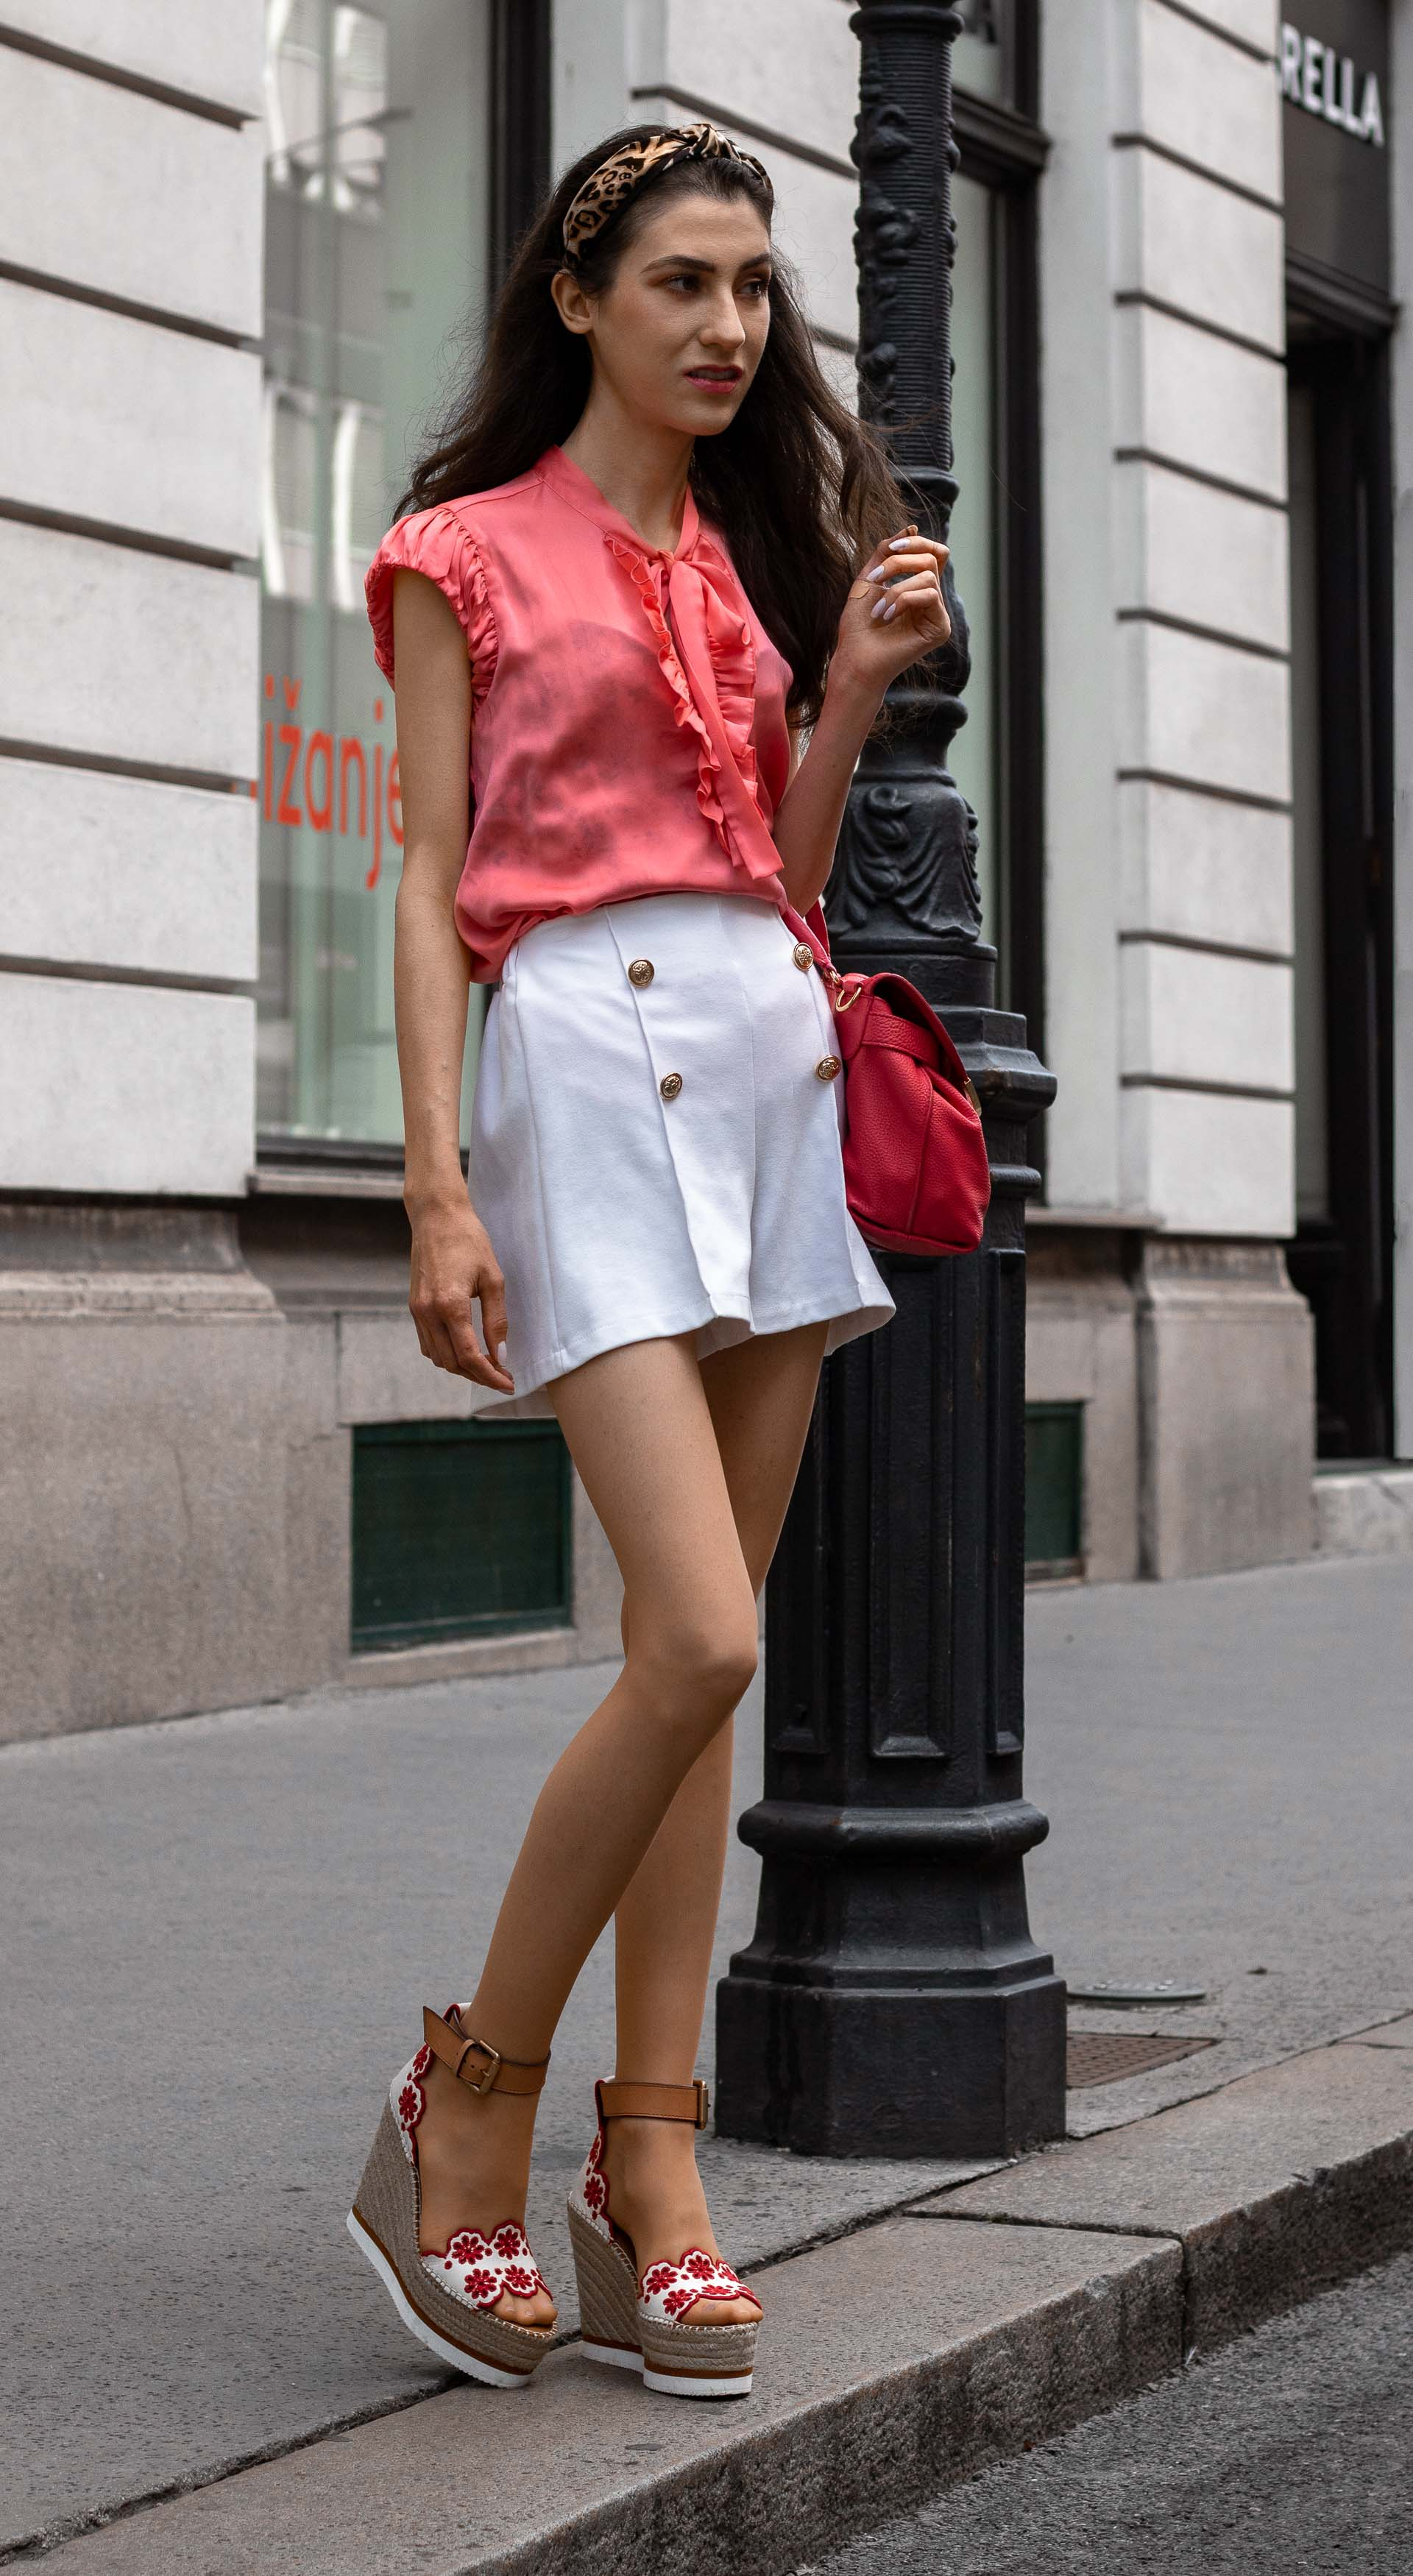 Gossip Girl Veronika Lipar Fashion Blogger of Brunette from Wall Street wearing peachy orange pussy-bow tie blouse white shorts leopard print headband pink top handle bag See by Chloe wedge espadrille sandals standing by the street lamp